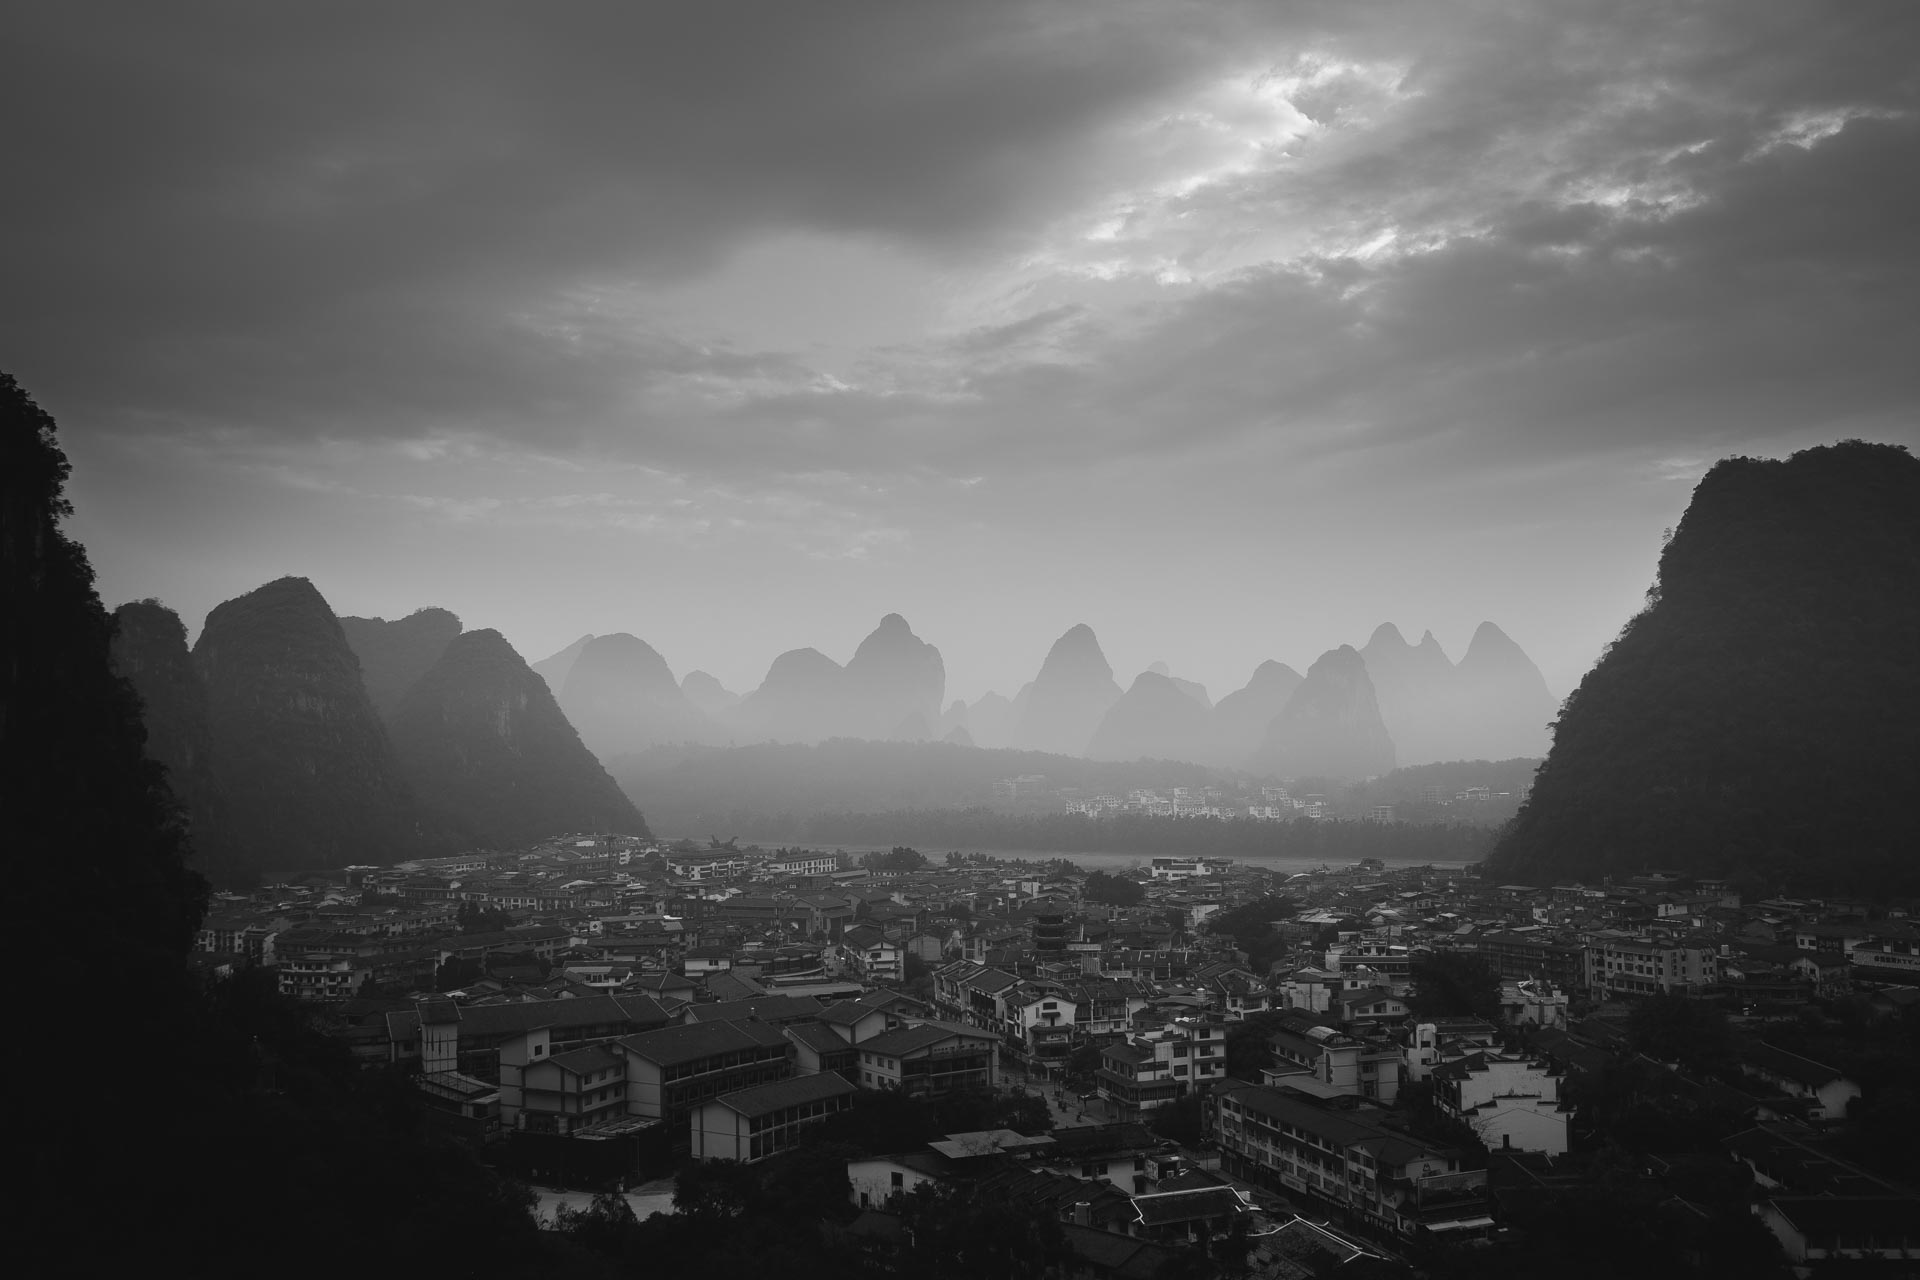 Foggy sunrise over the town of Yangshuo. China